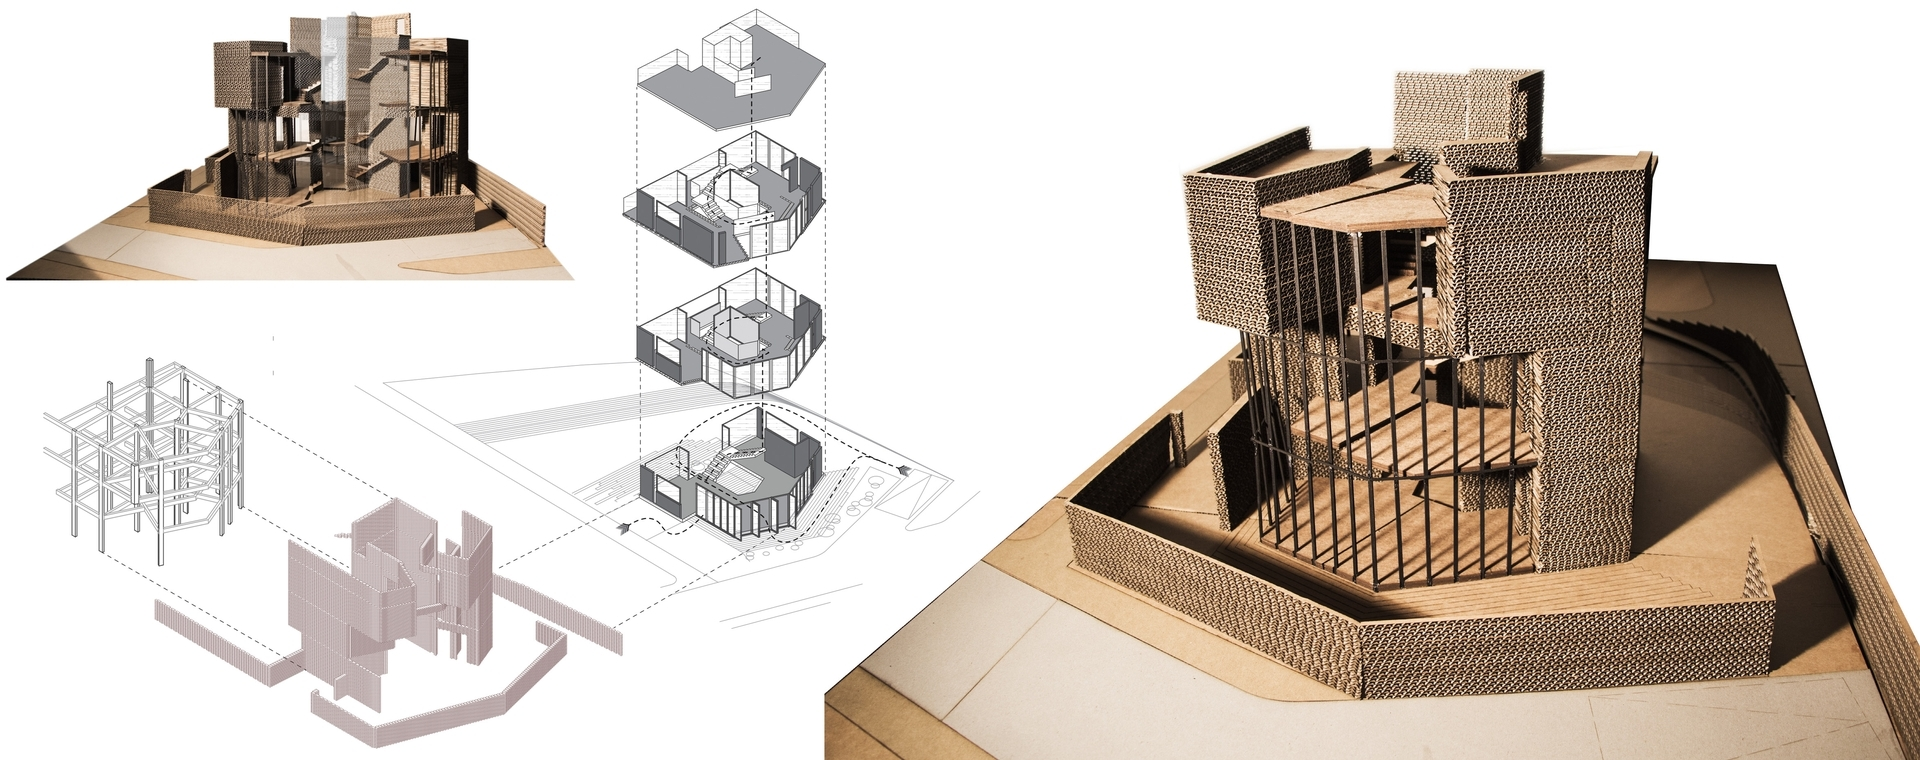 Enlarge Photo: Ideas for the Village: Rethinking Village House typologies in Hong Kong 6